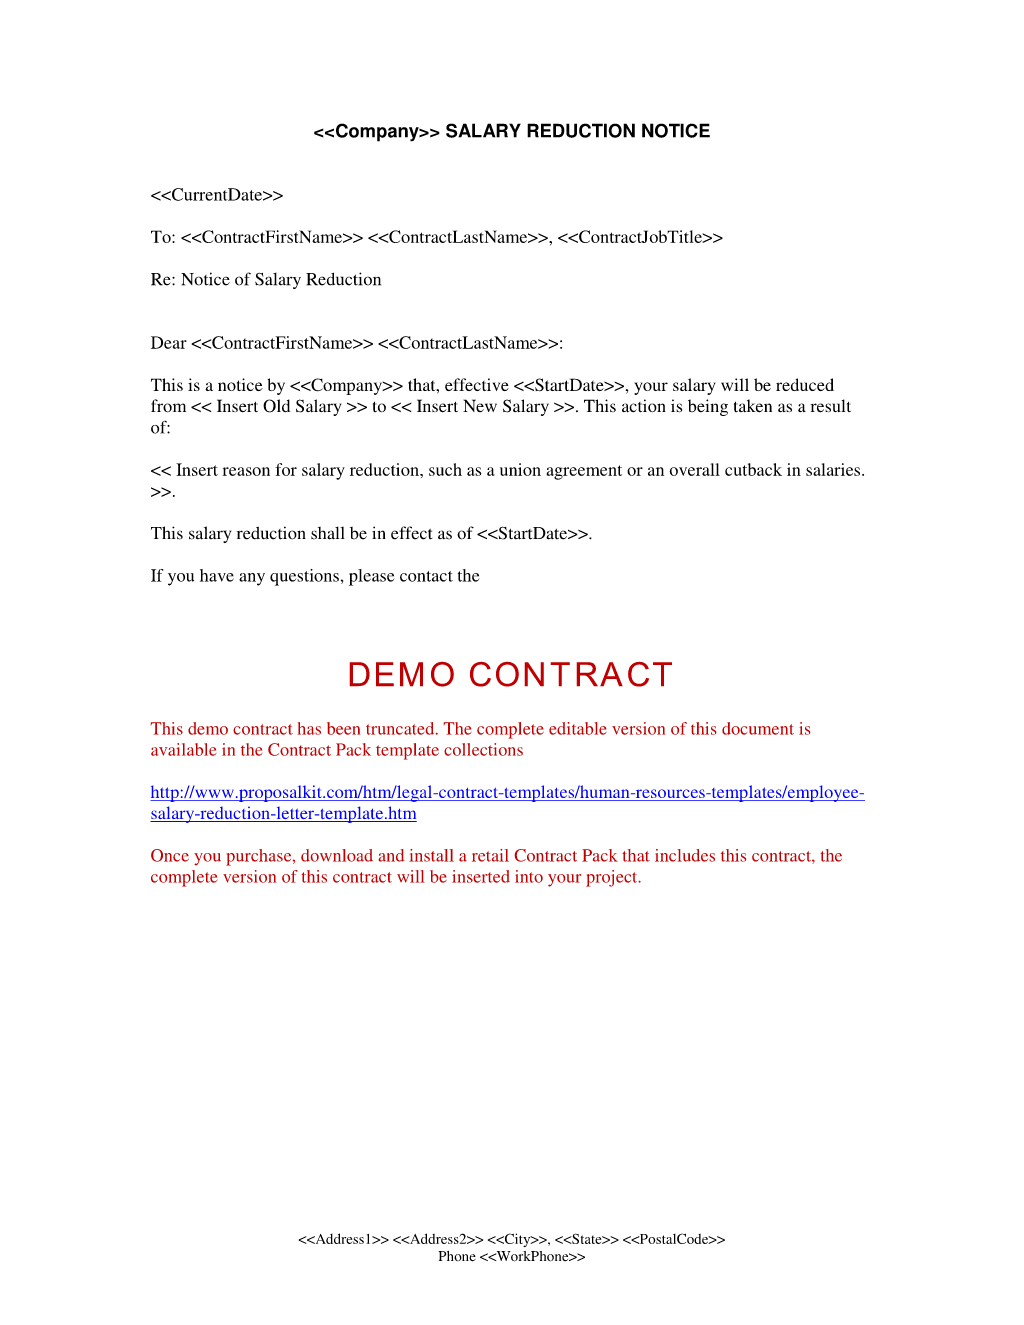 wage agreement template - employee salary reduction letter human resources letters